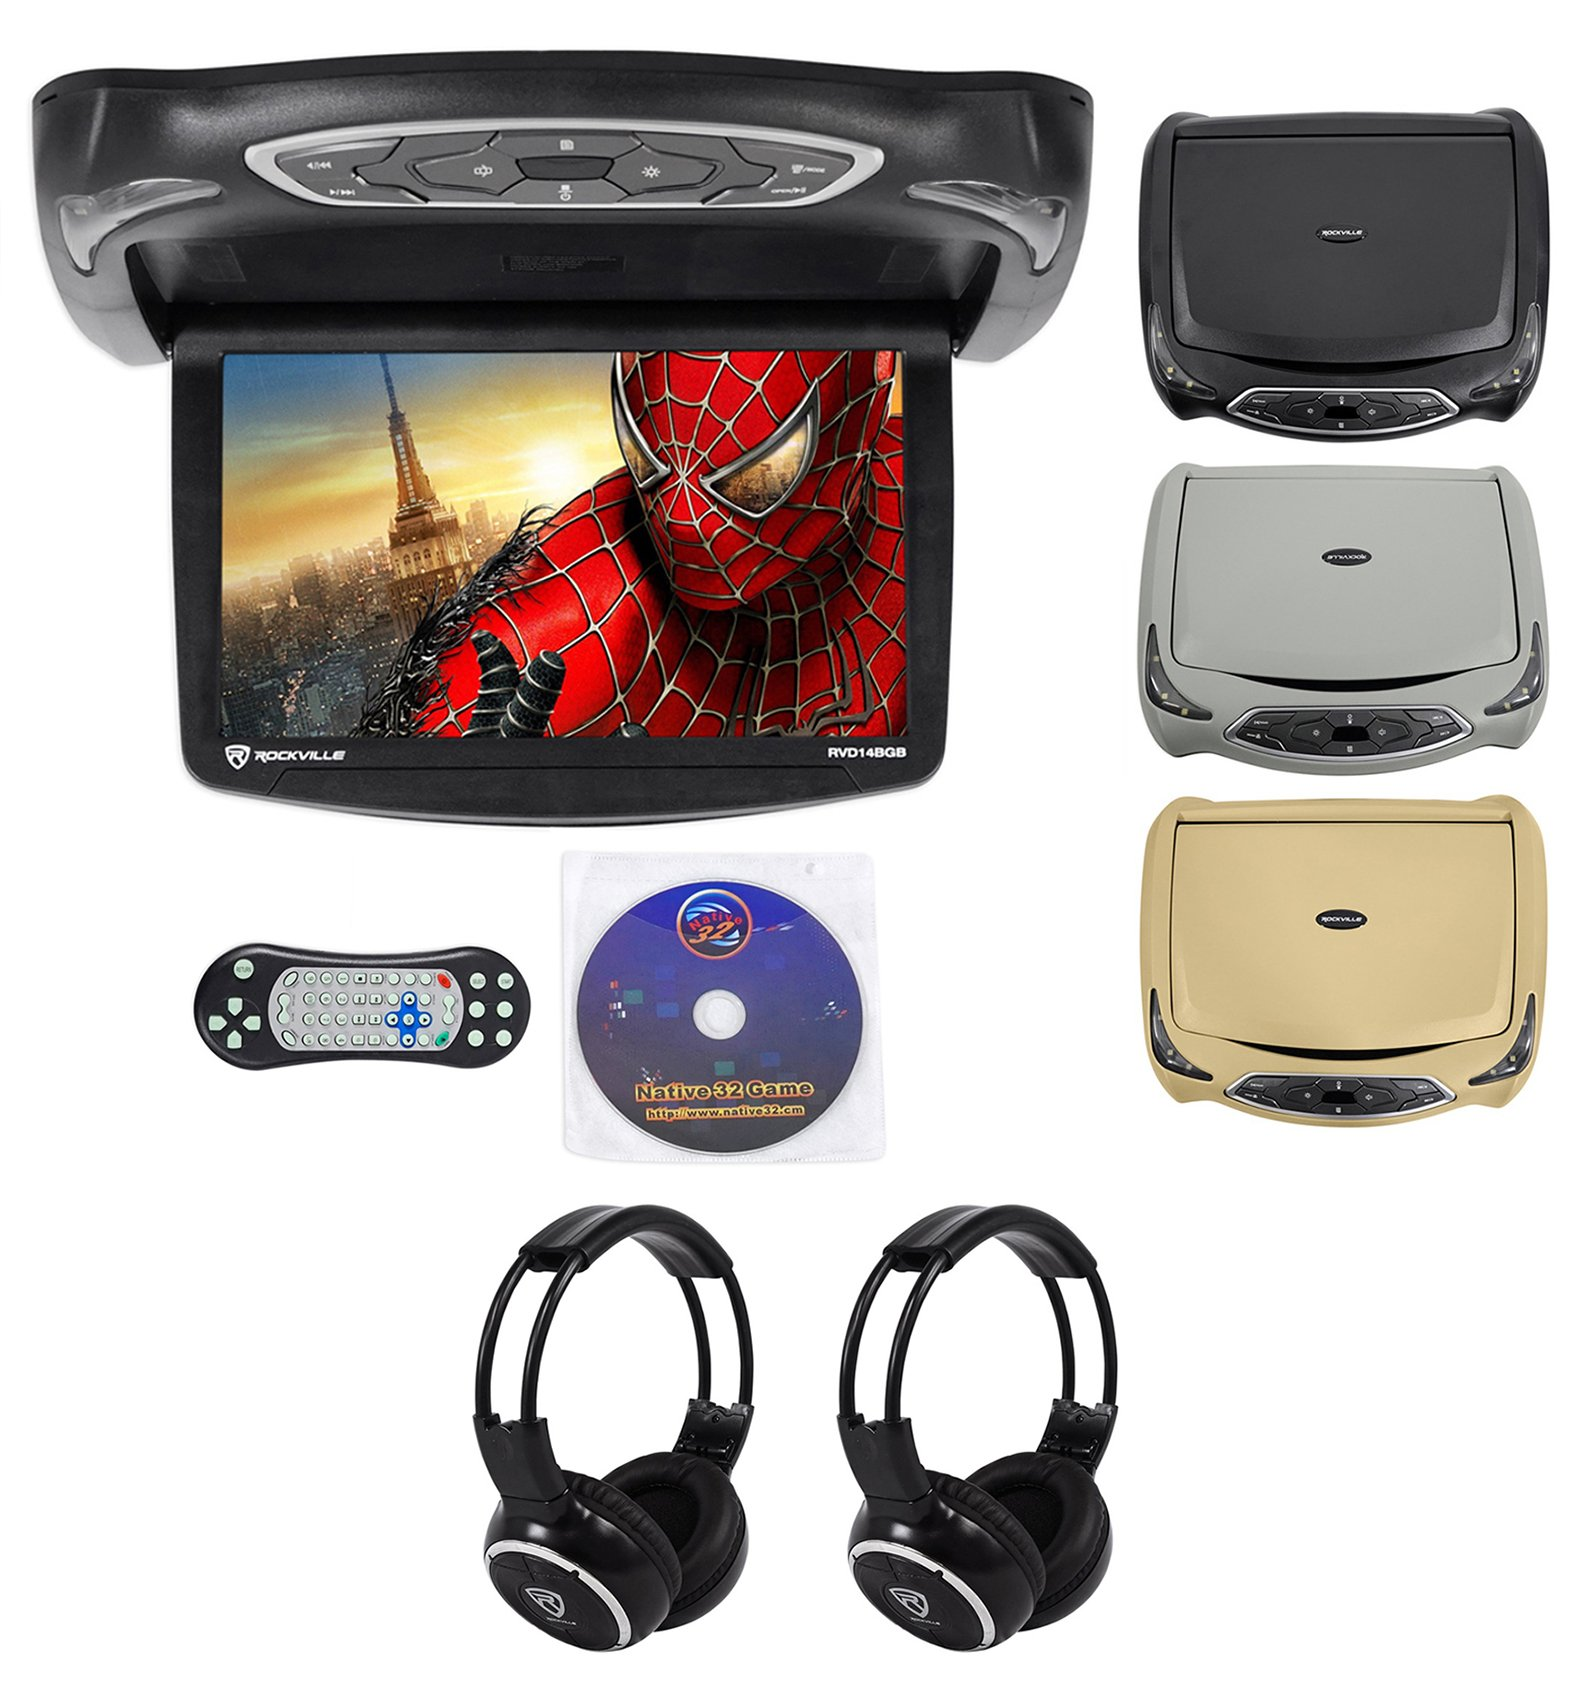 Rockville RVD14BGB Black/Grey/Tan 14'' Flip Down Car DVD Monitor+Games+Headphones by Rockville